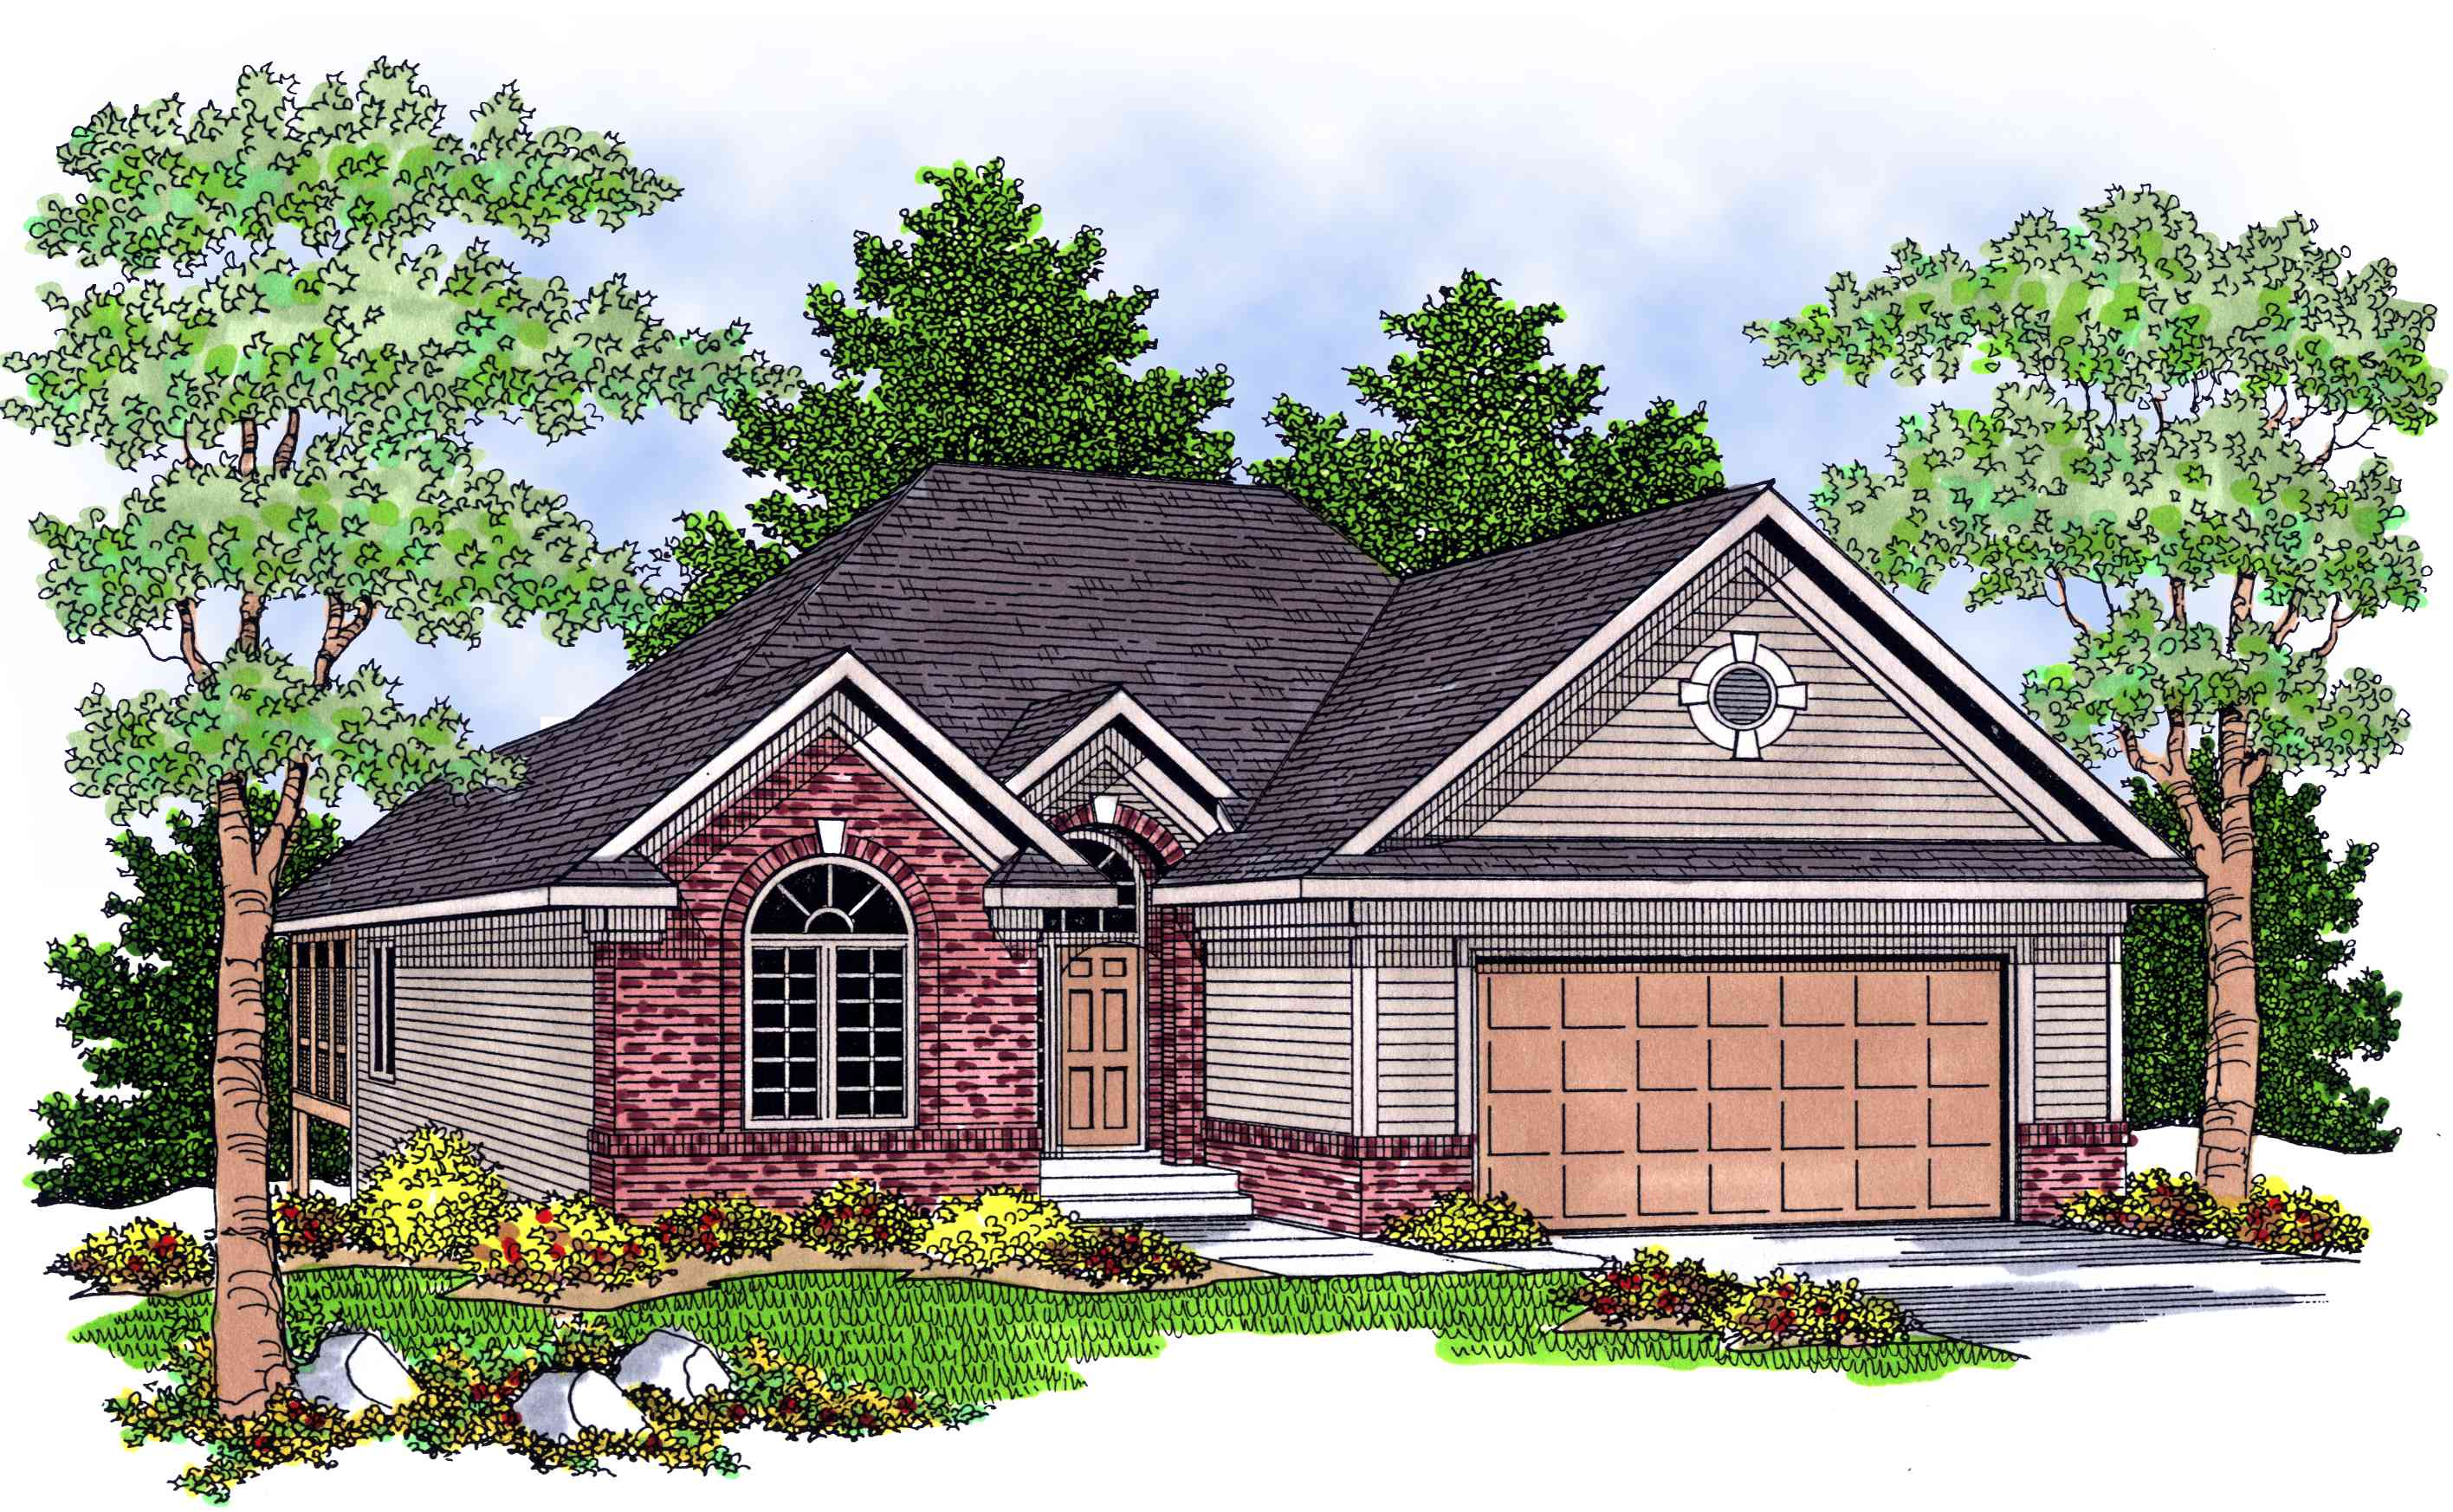 Classic ranch home plan 8983ah 1st floor master suite for Classic ranch homes